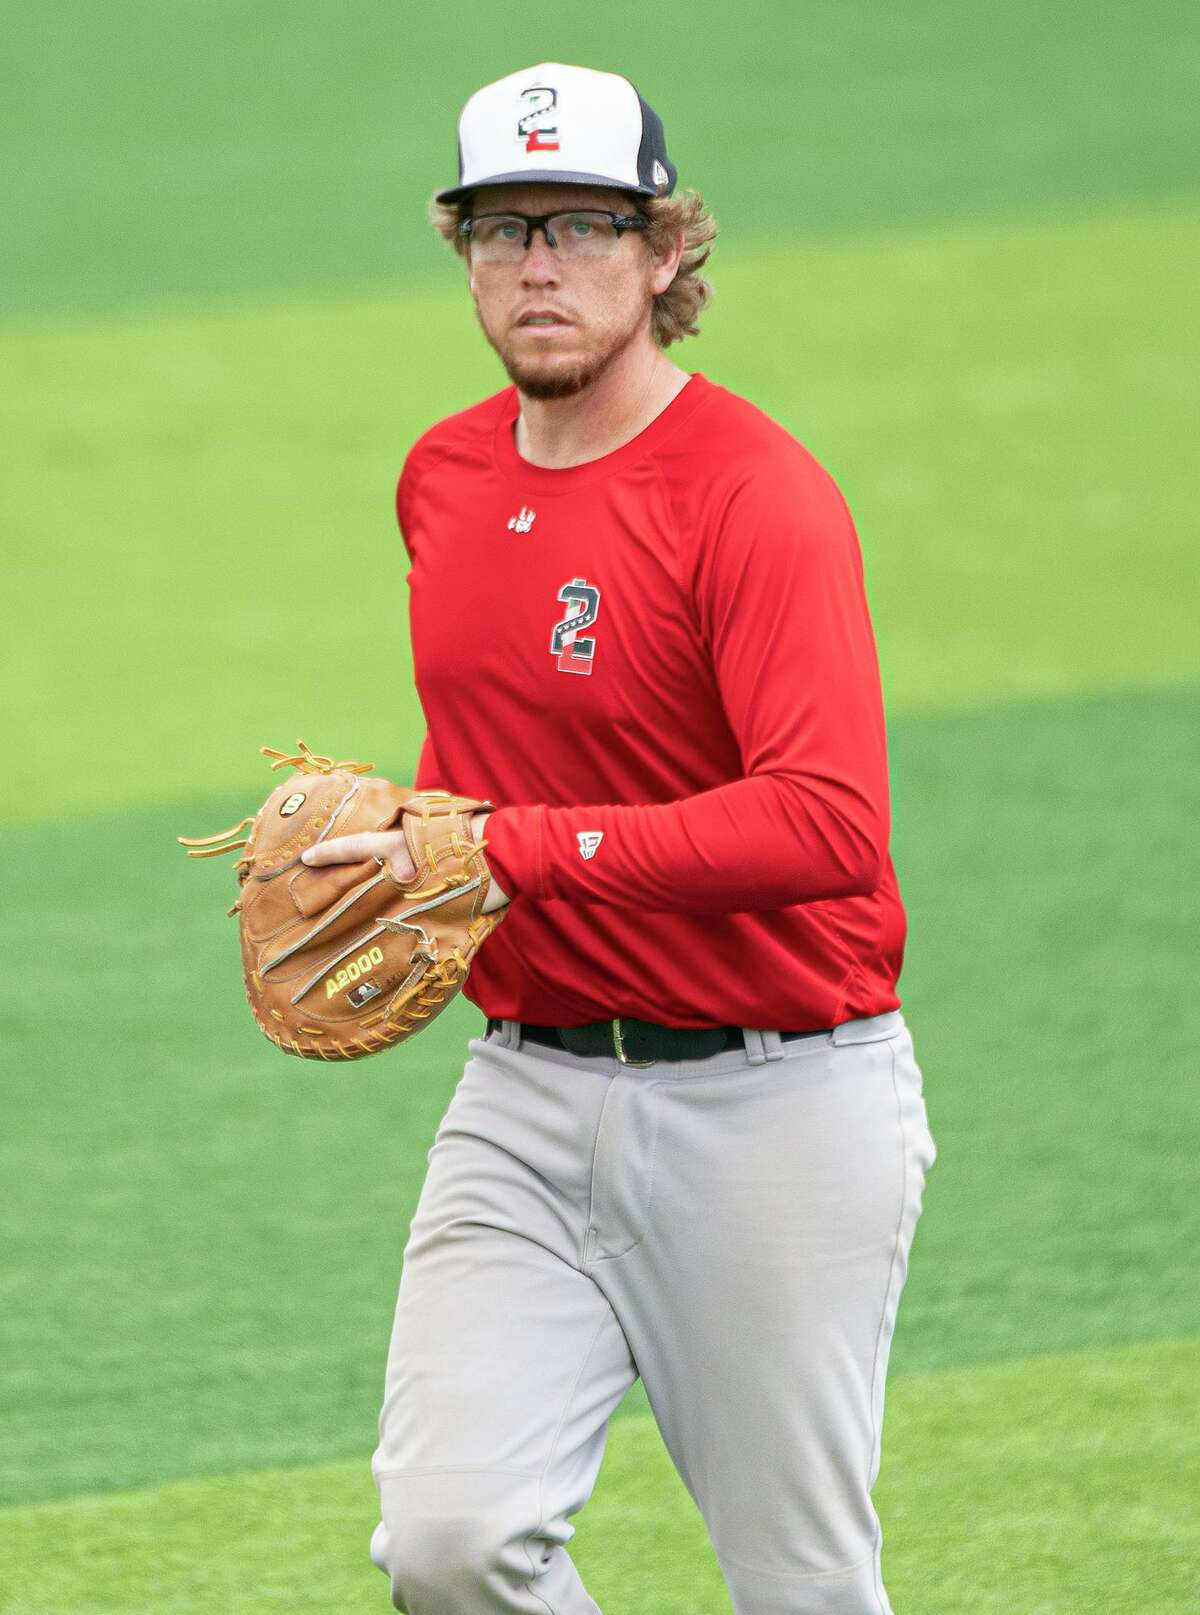 Tecolotes Dos Laredos catcher Garrett Ouellette likes to use the one-knee-down stance from time to time.